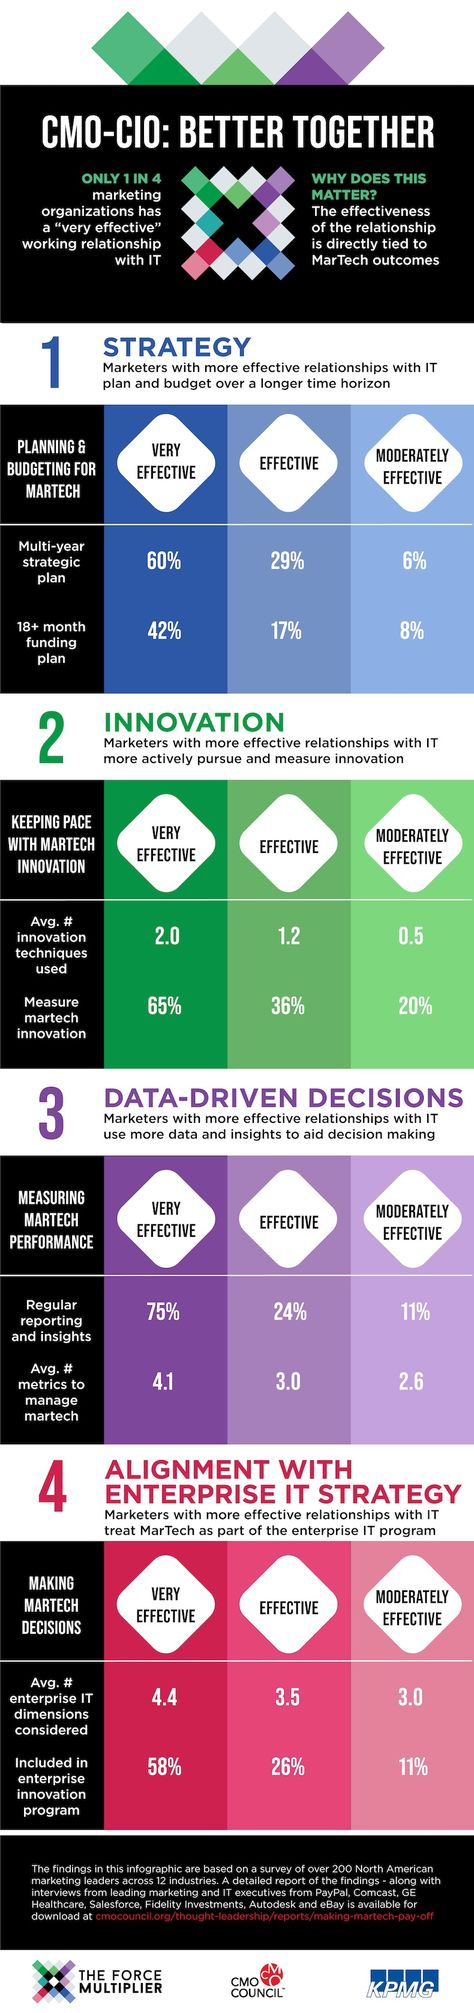 Four Reasons the CMO-CIO Relationship (Really) Matters [Infographic]